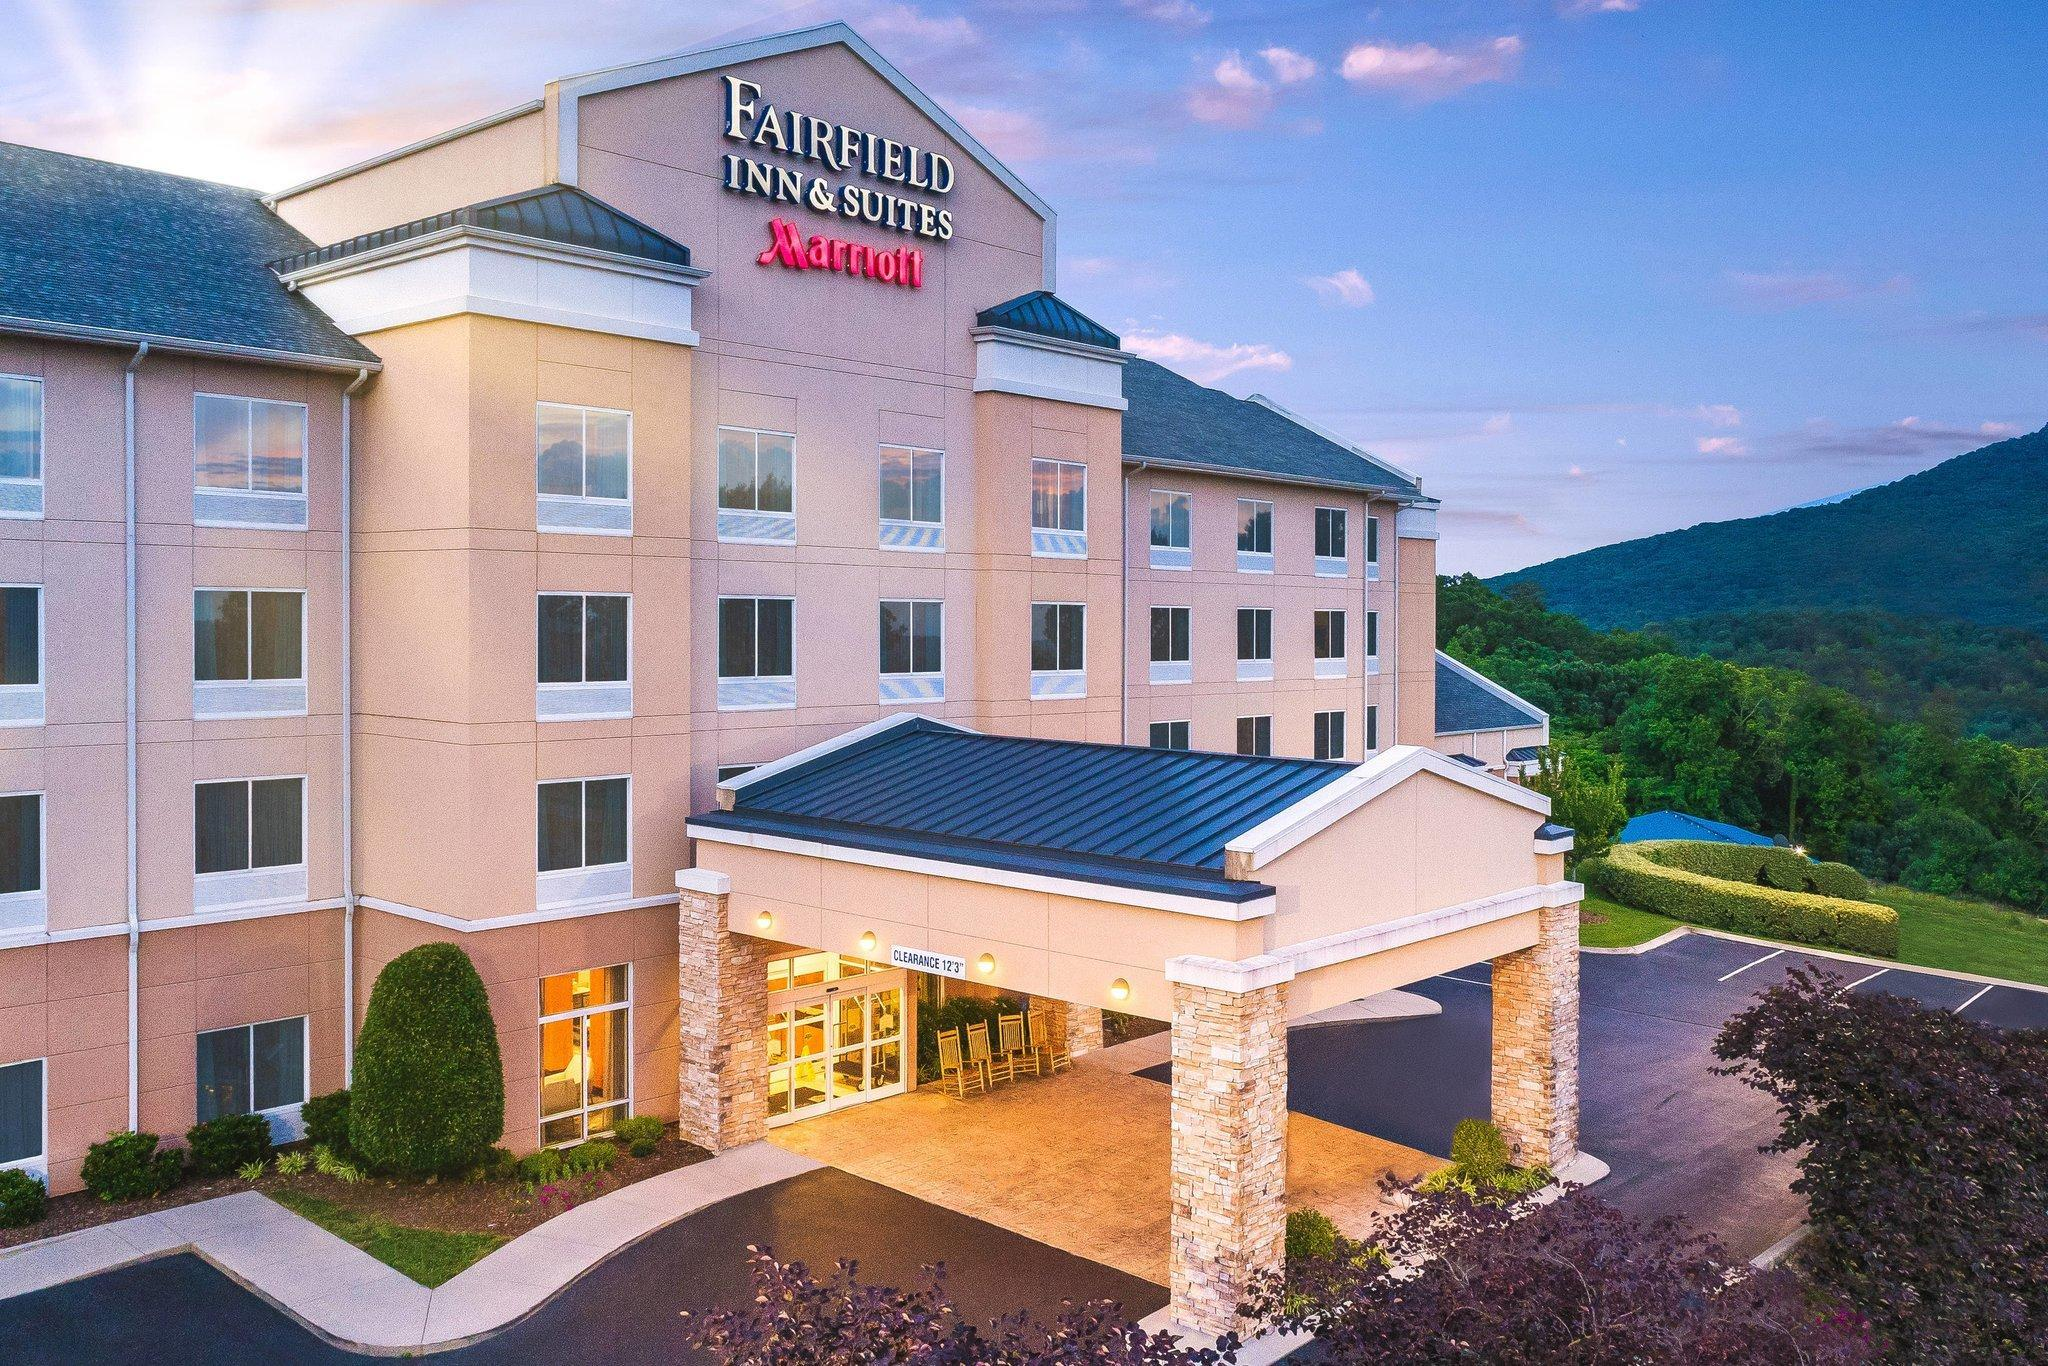 Fairfield Inn And Suites Chattanooga I 24 Lookout Mountain